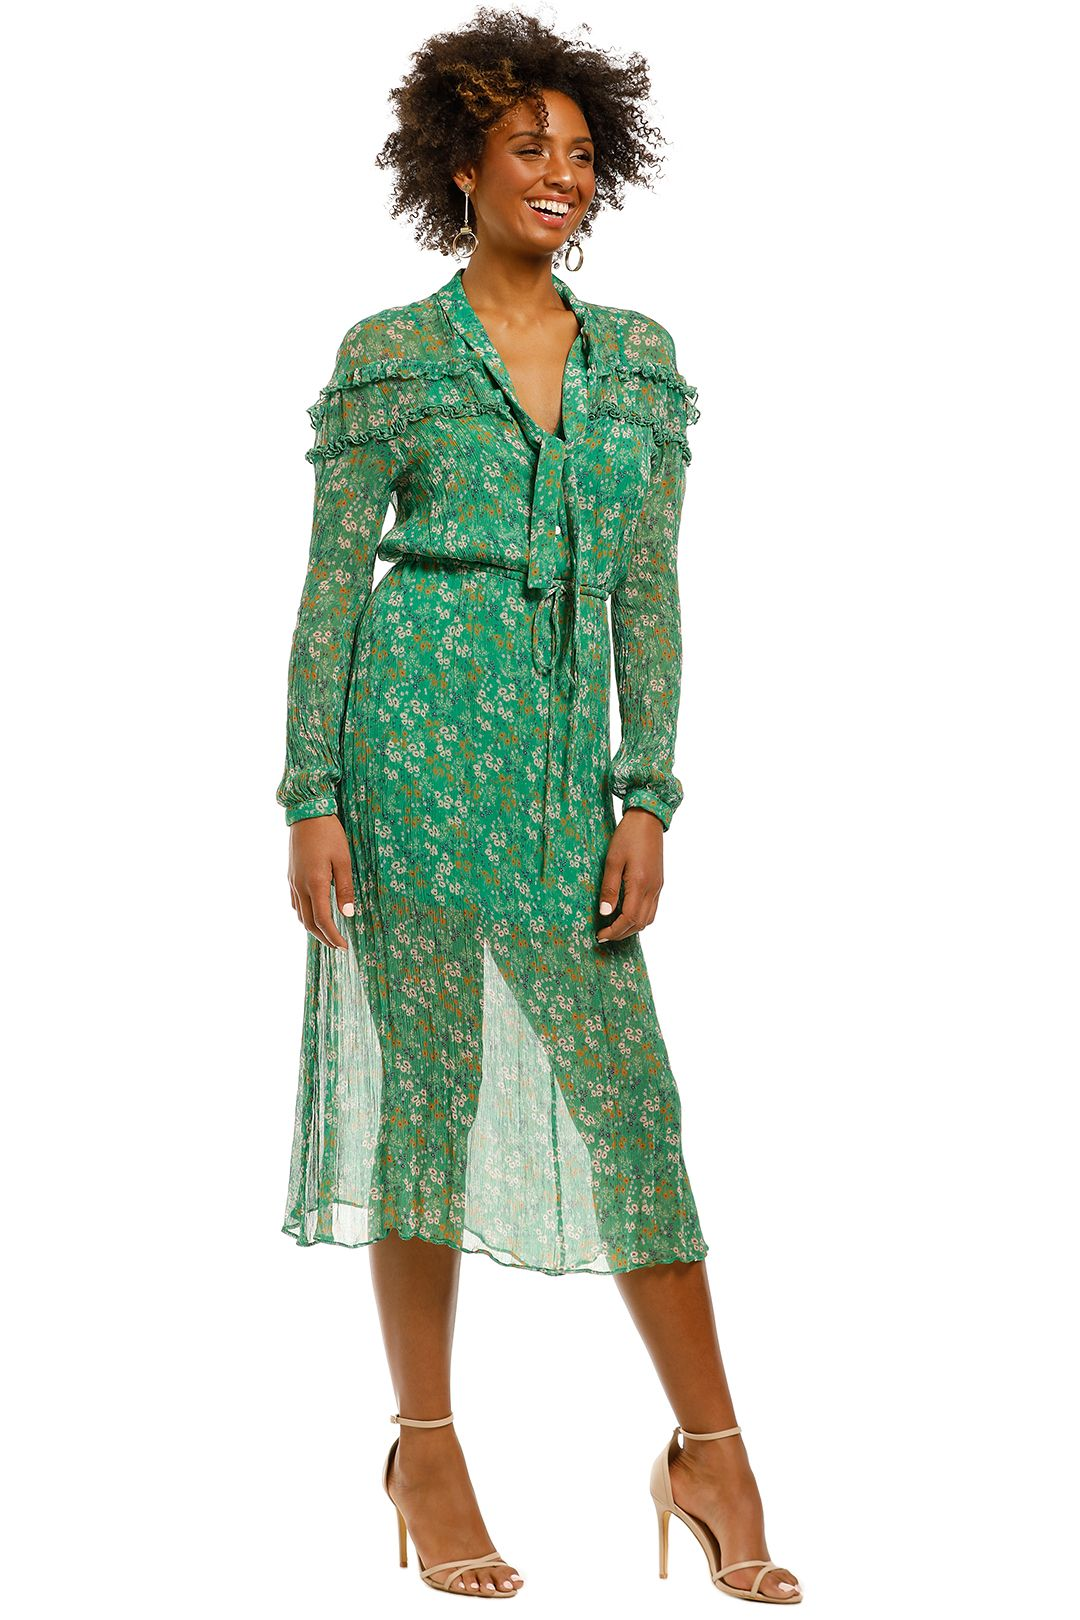 Stevie-May-Jade Valentine-LS-Maxi-Dress-Moss-Floral-Side